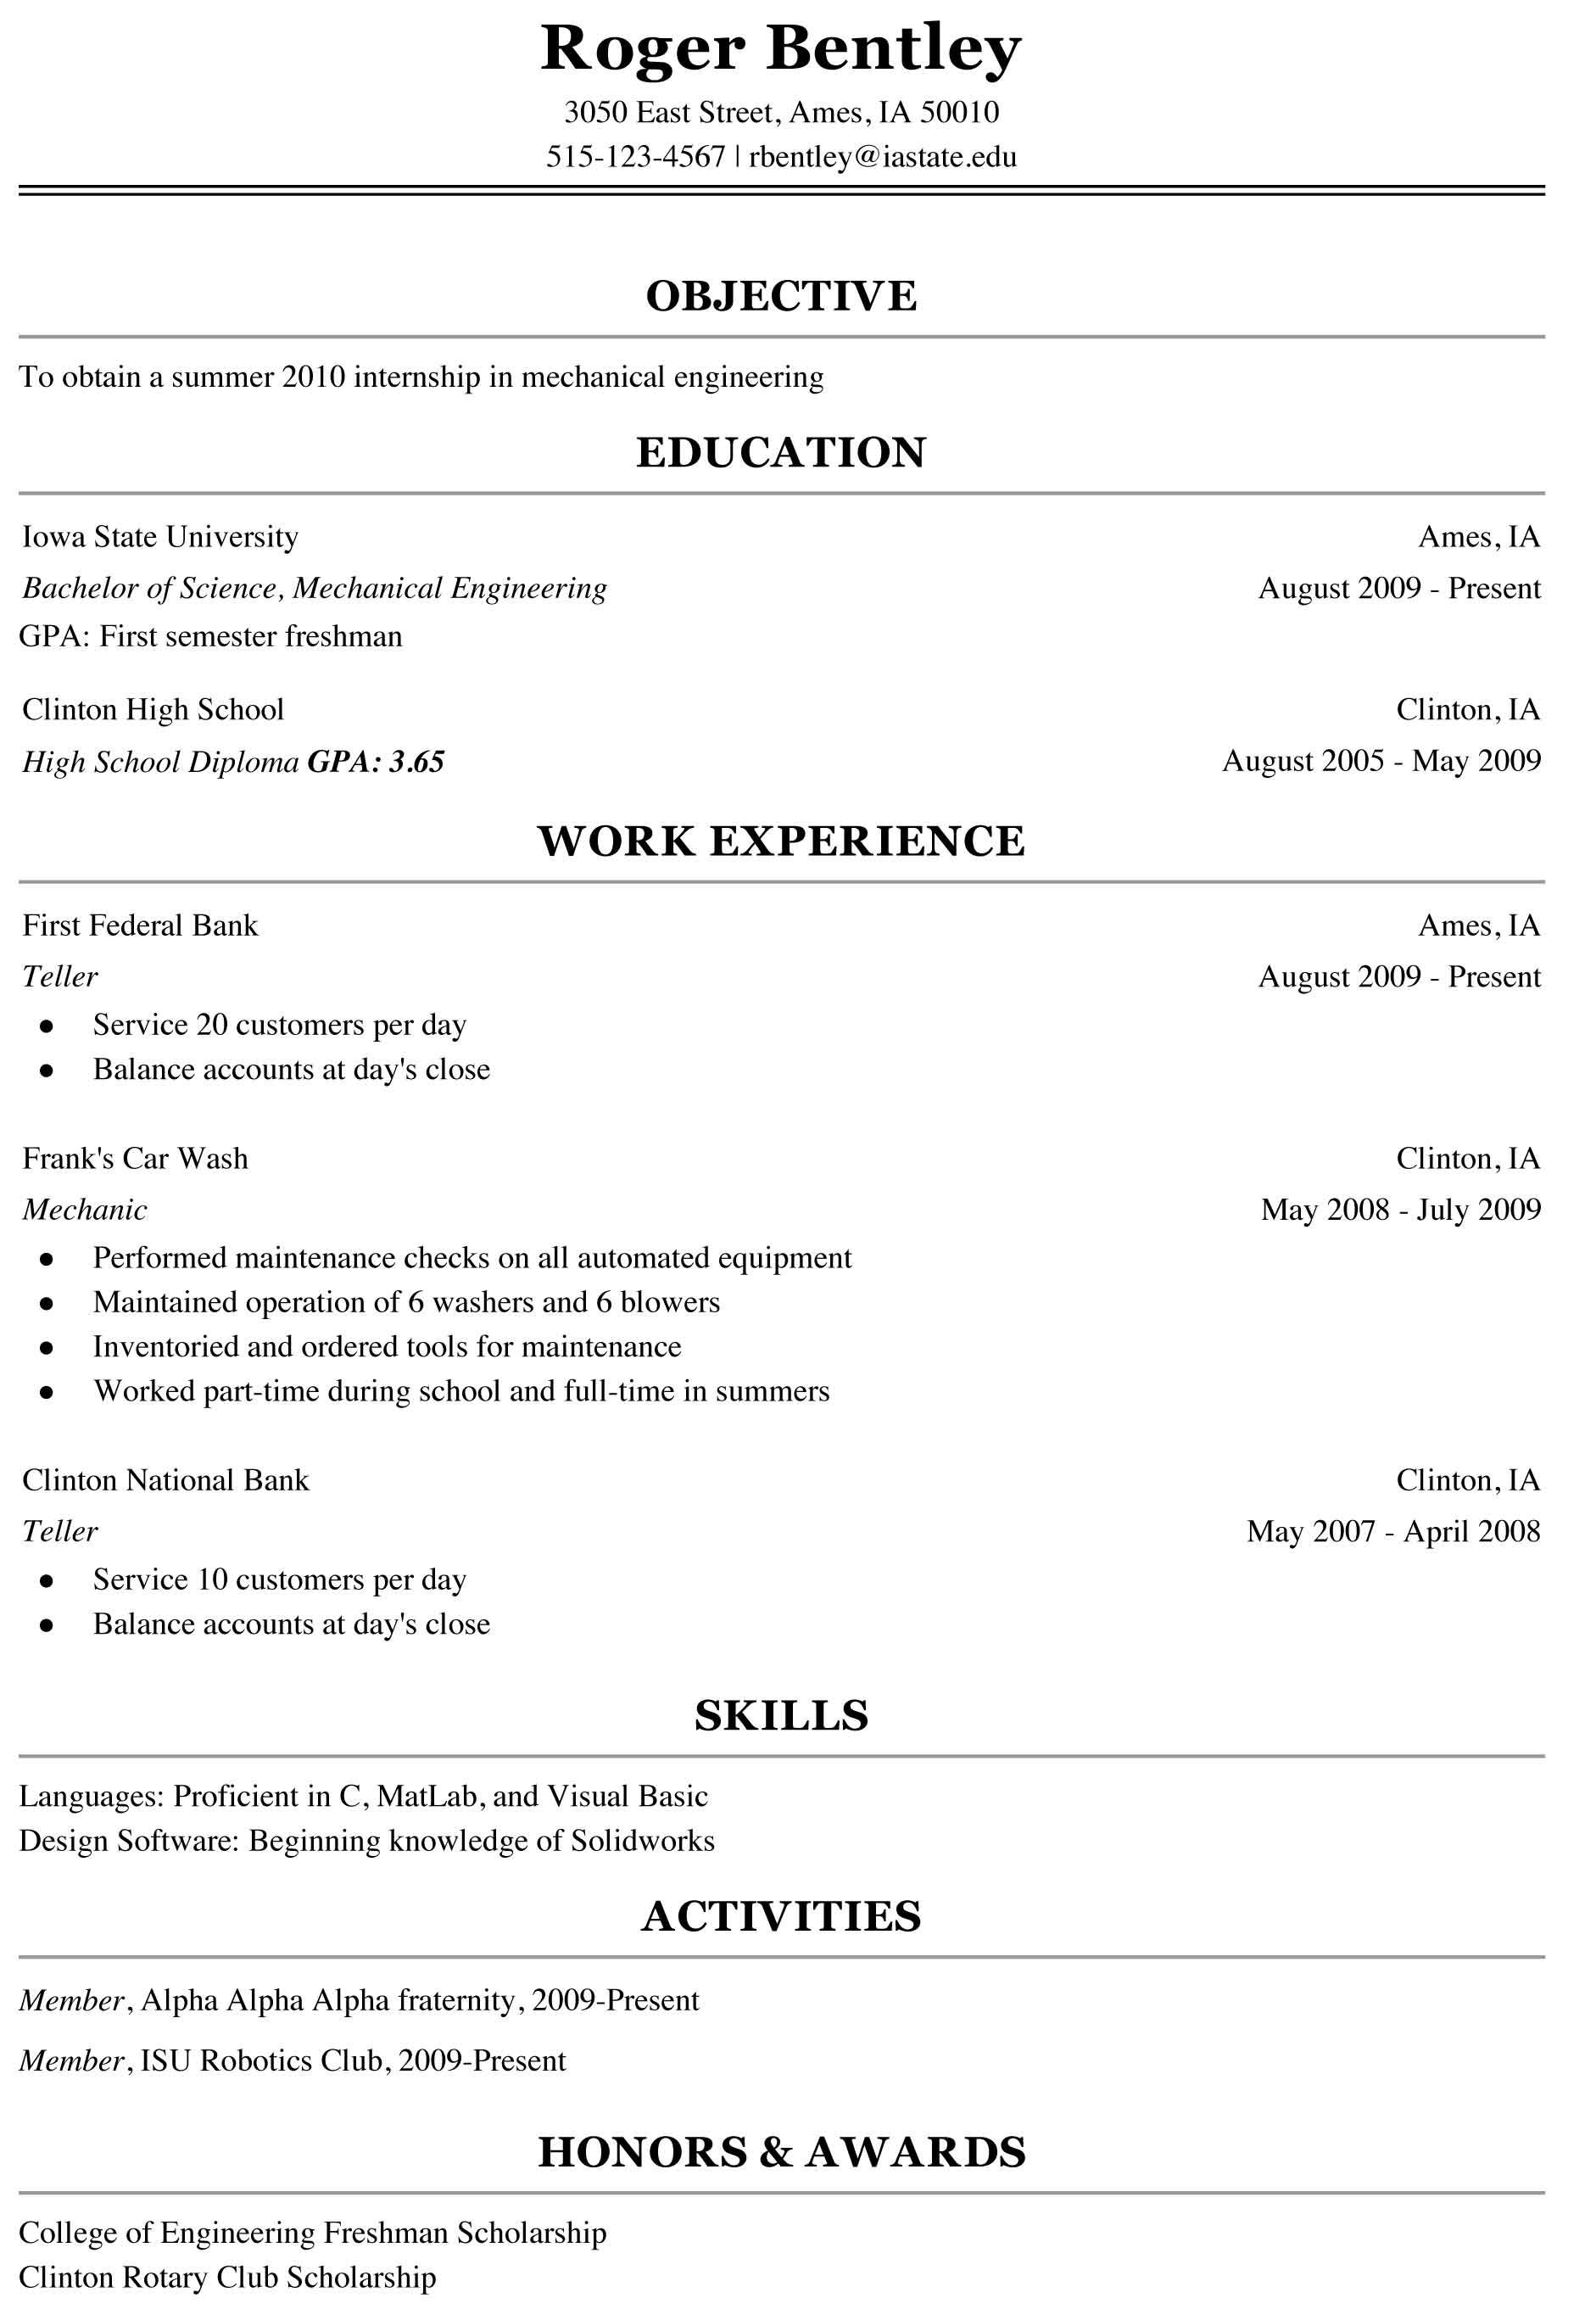 Resume for college freshmen altavistaventures Images